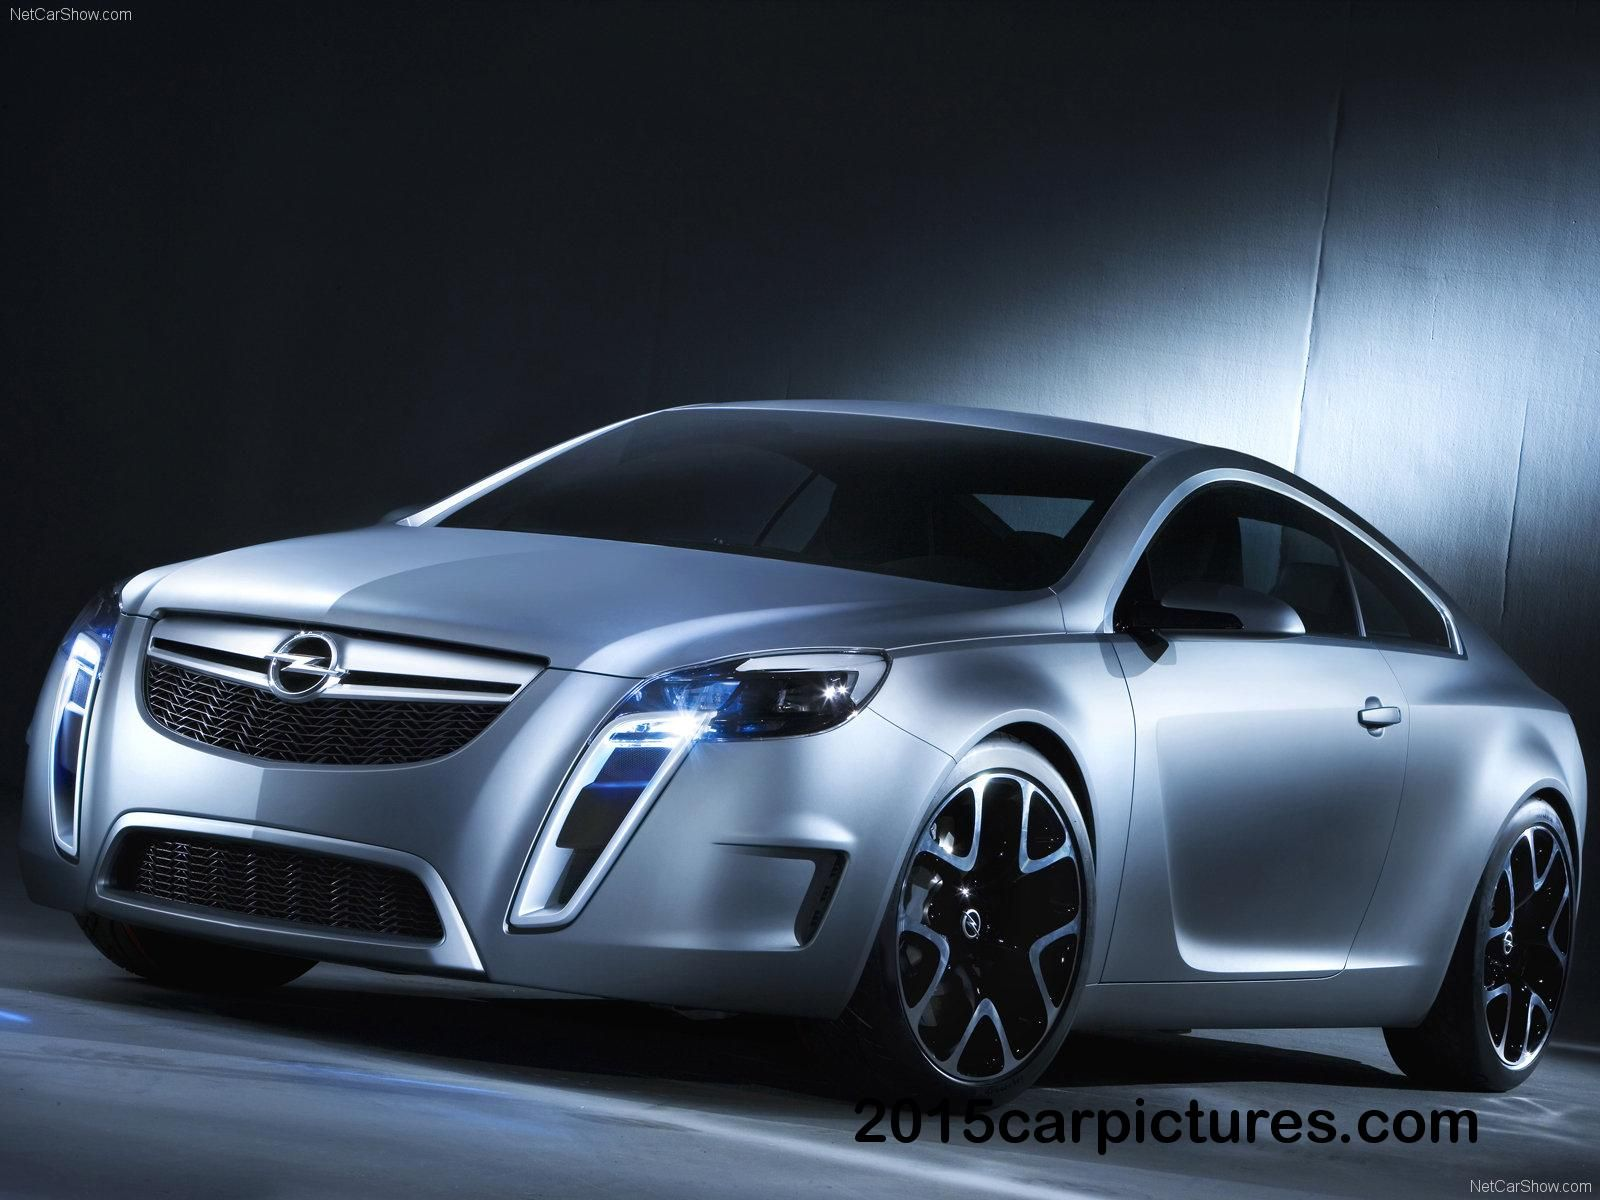 Opel Concept Car Pictures Full HD Car Pictures